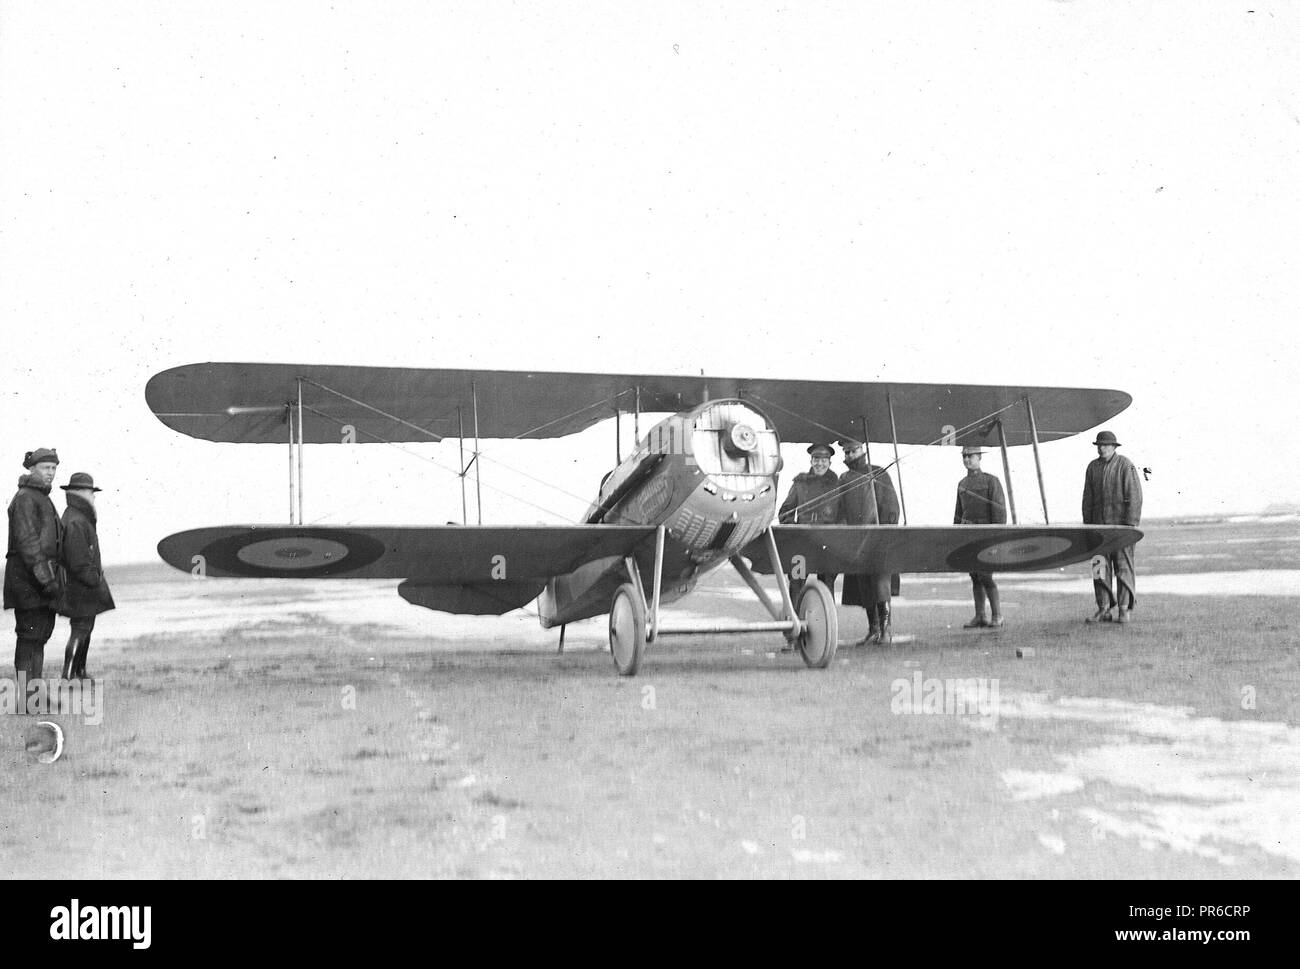 2/1/1918 -  Front view of a spad aeroplane, Mineola, L.I - Stock Image